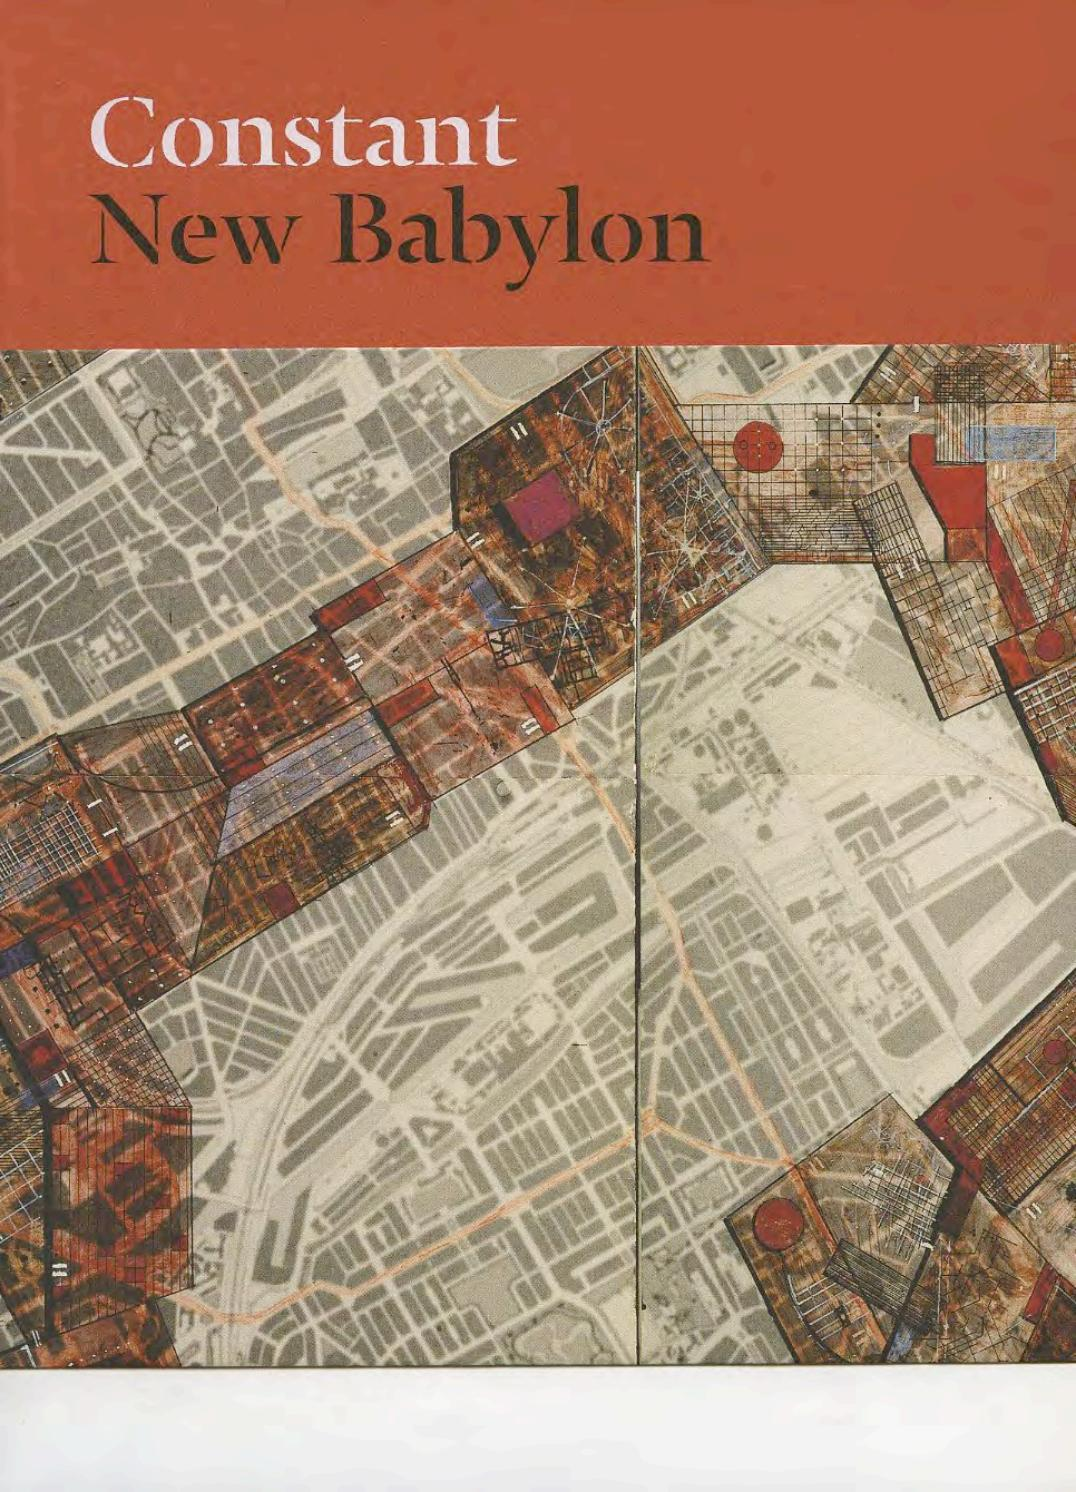 Constant  New Babylon by Museo Reina Sofía - issuu